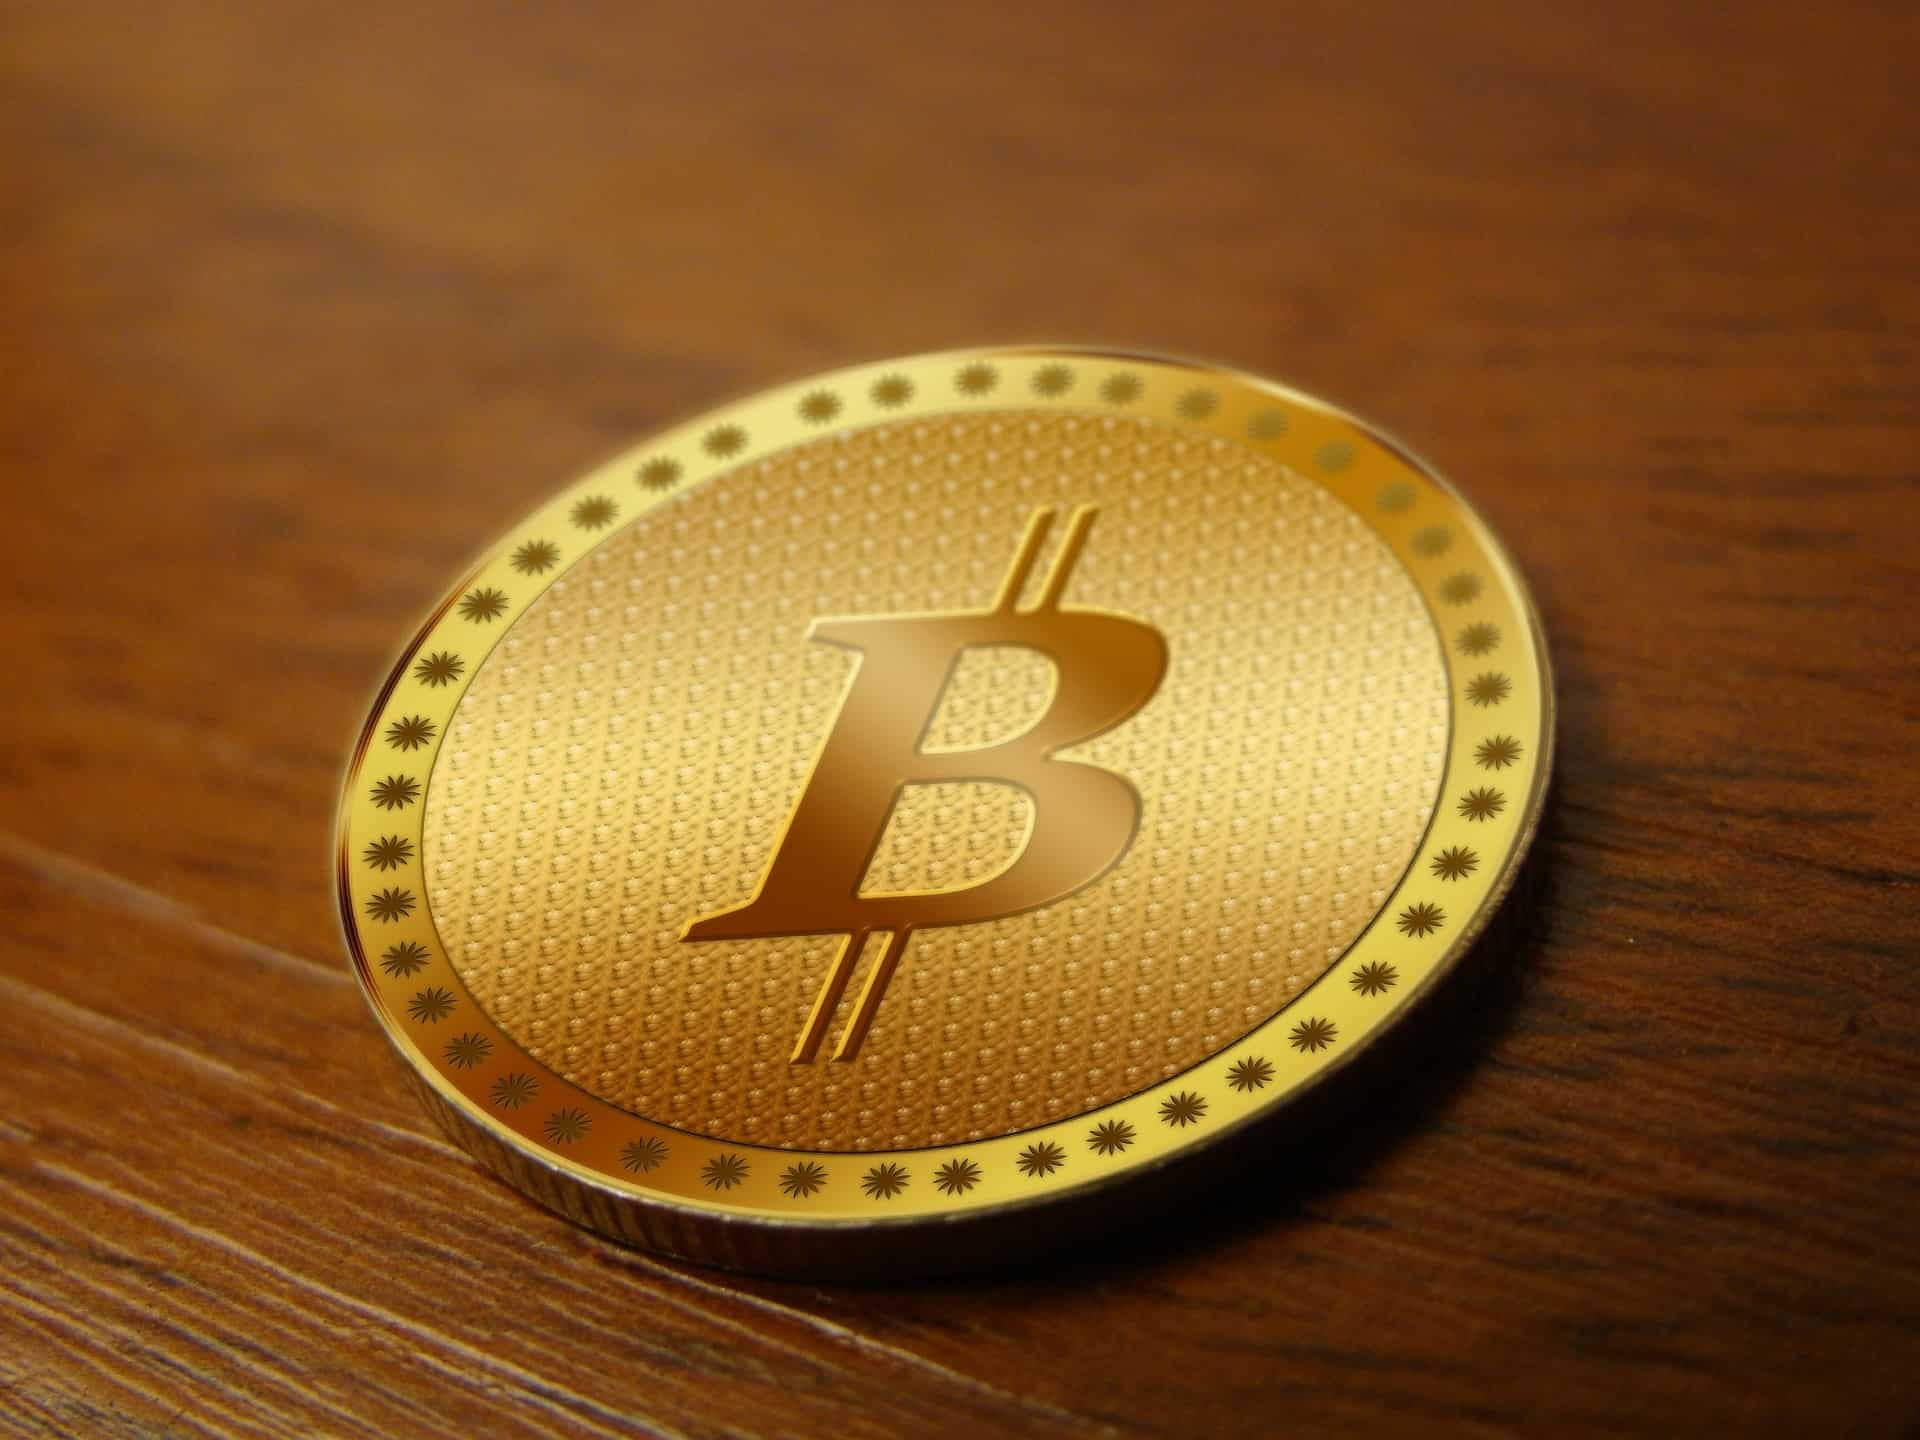 value of 1 bitcoin in india